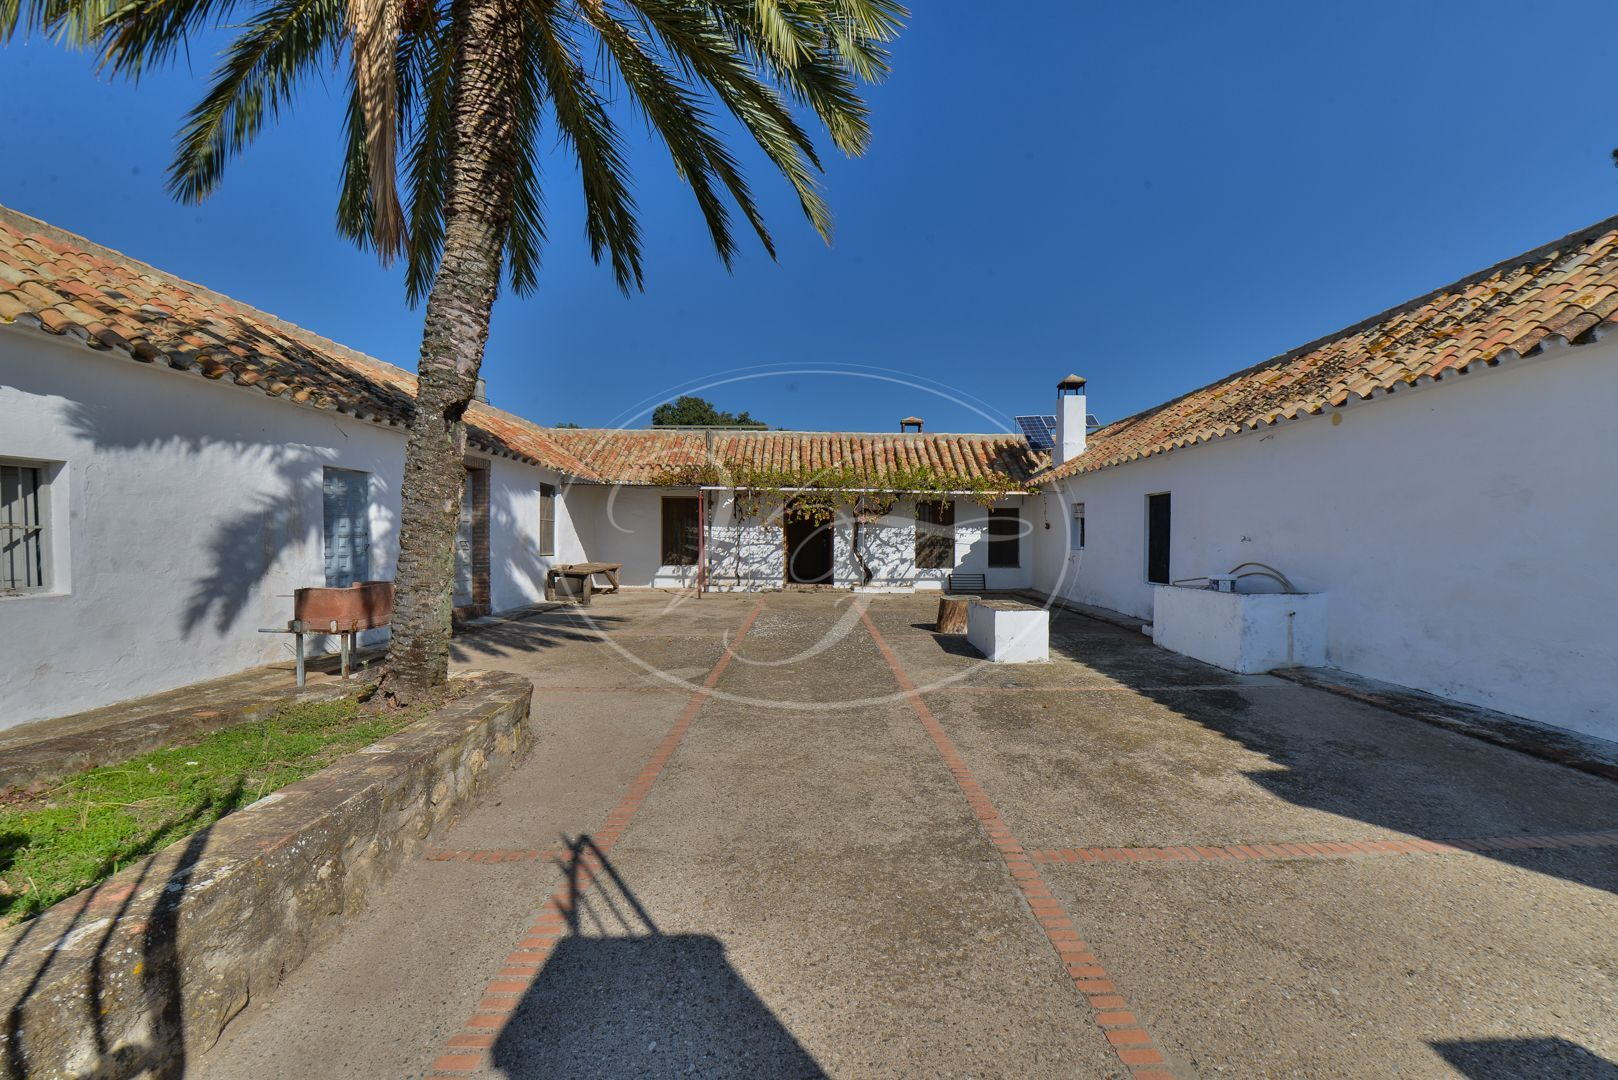 Cortijo for sale in Almodovar del Rio